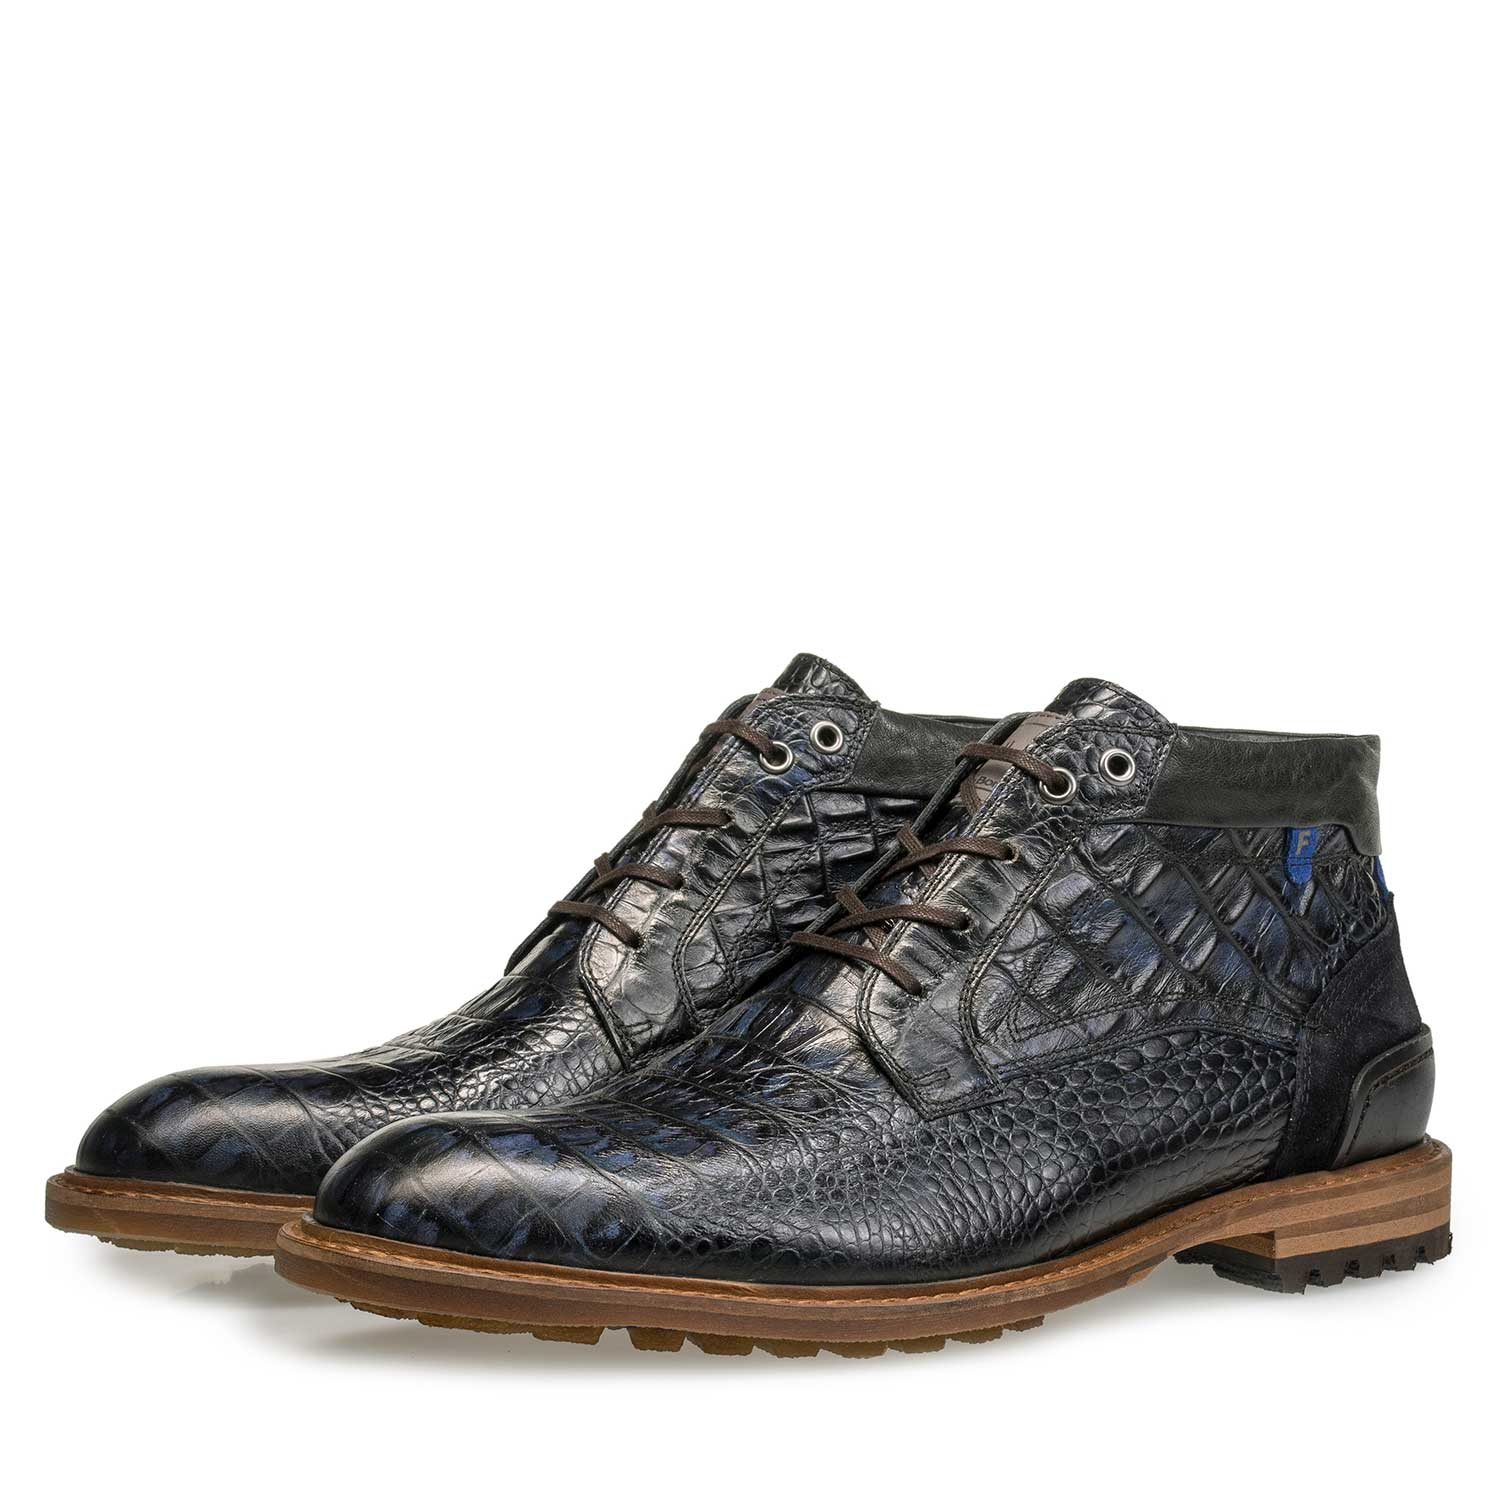 10228/13 - Blue leather lace boot with croco print